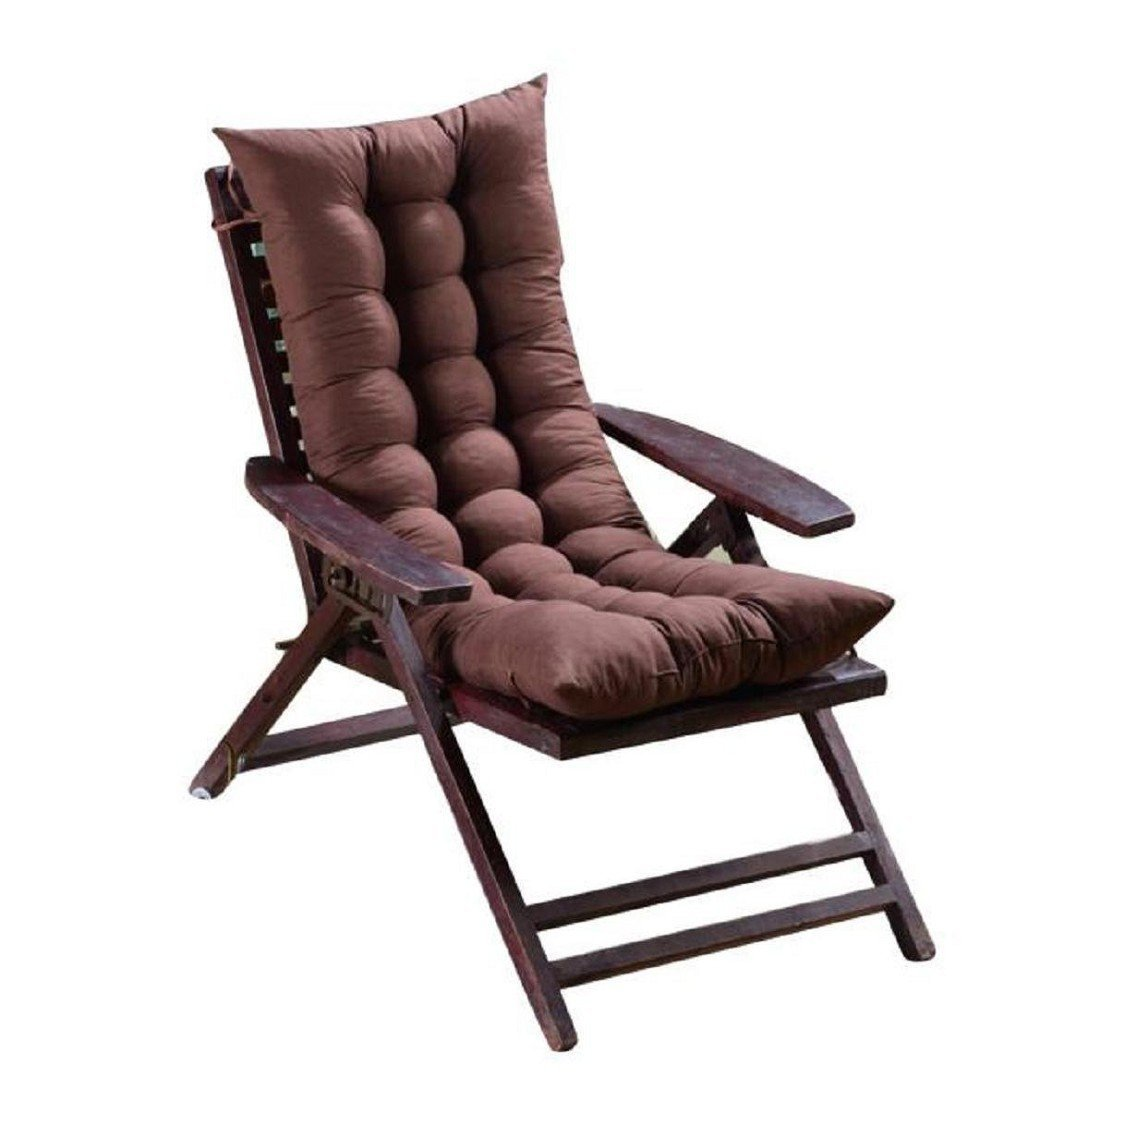 Comfortable Chair Most Comfortable Living Room Chair Home Furniture Design